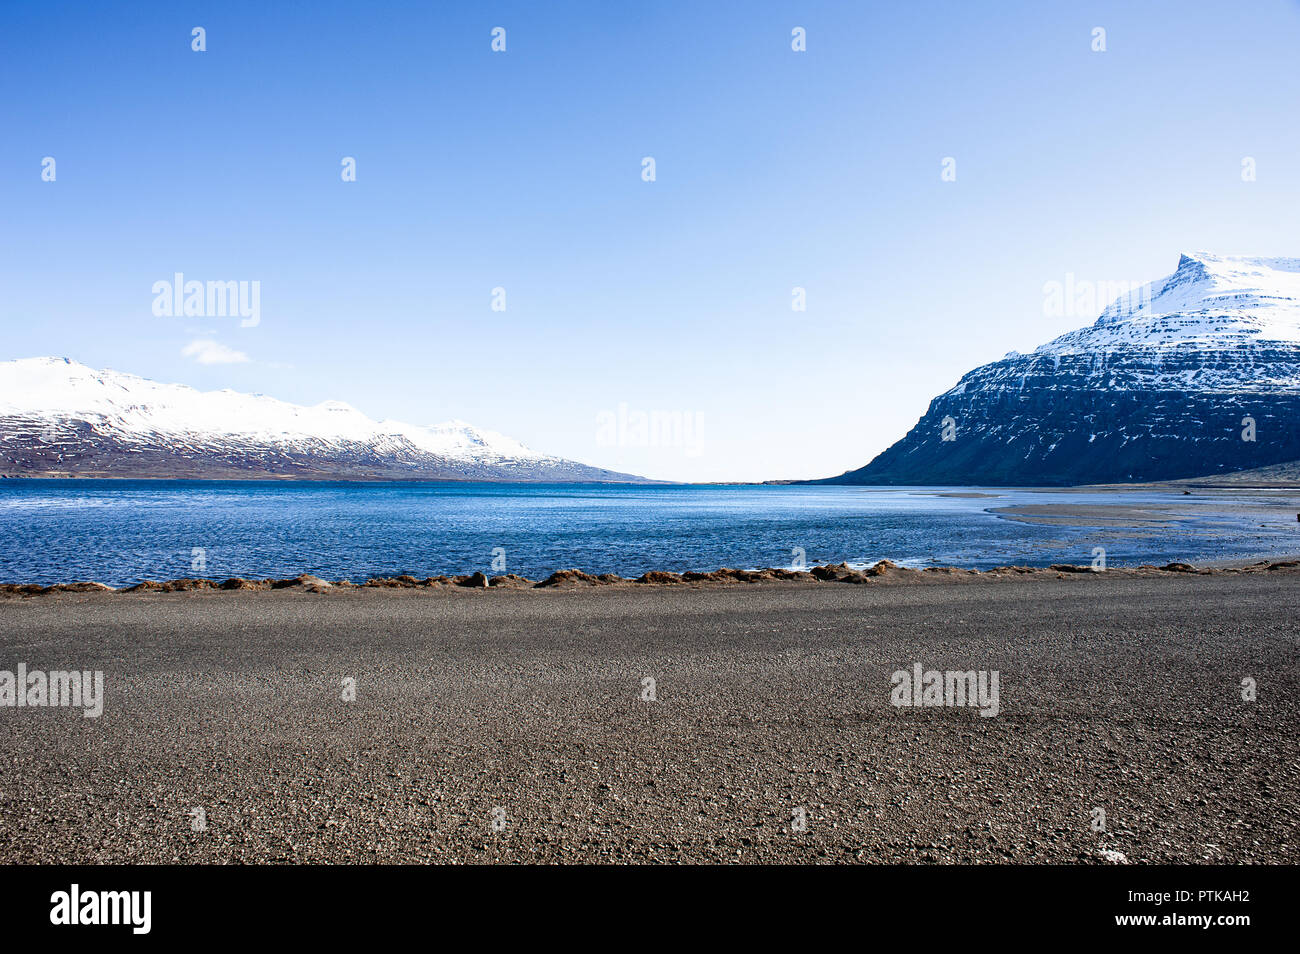 Seydisfjordur, Eastern Fjords, Iceland. Snow capped mountain peaks, sparkling waters and blue sky background - Stock Image